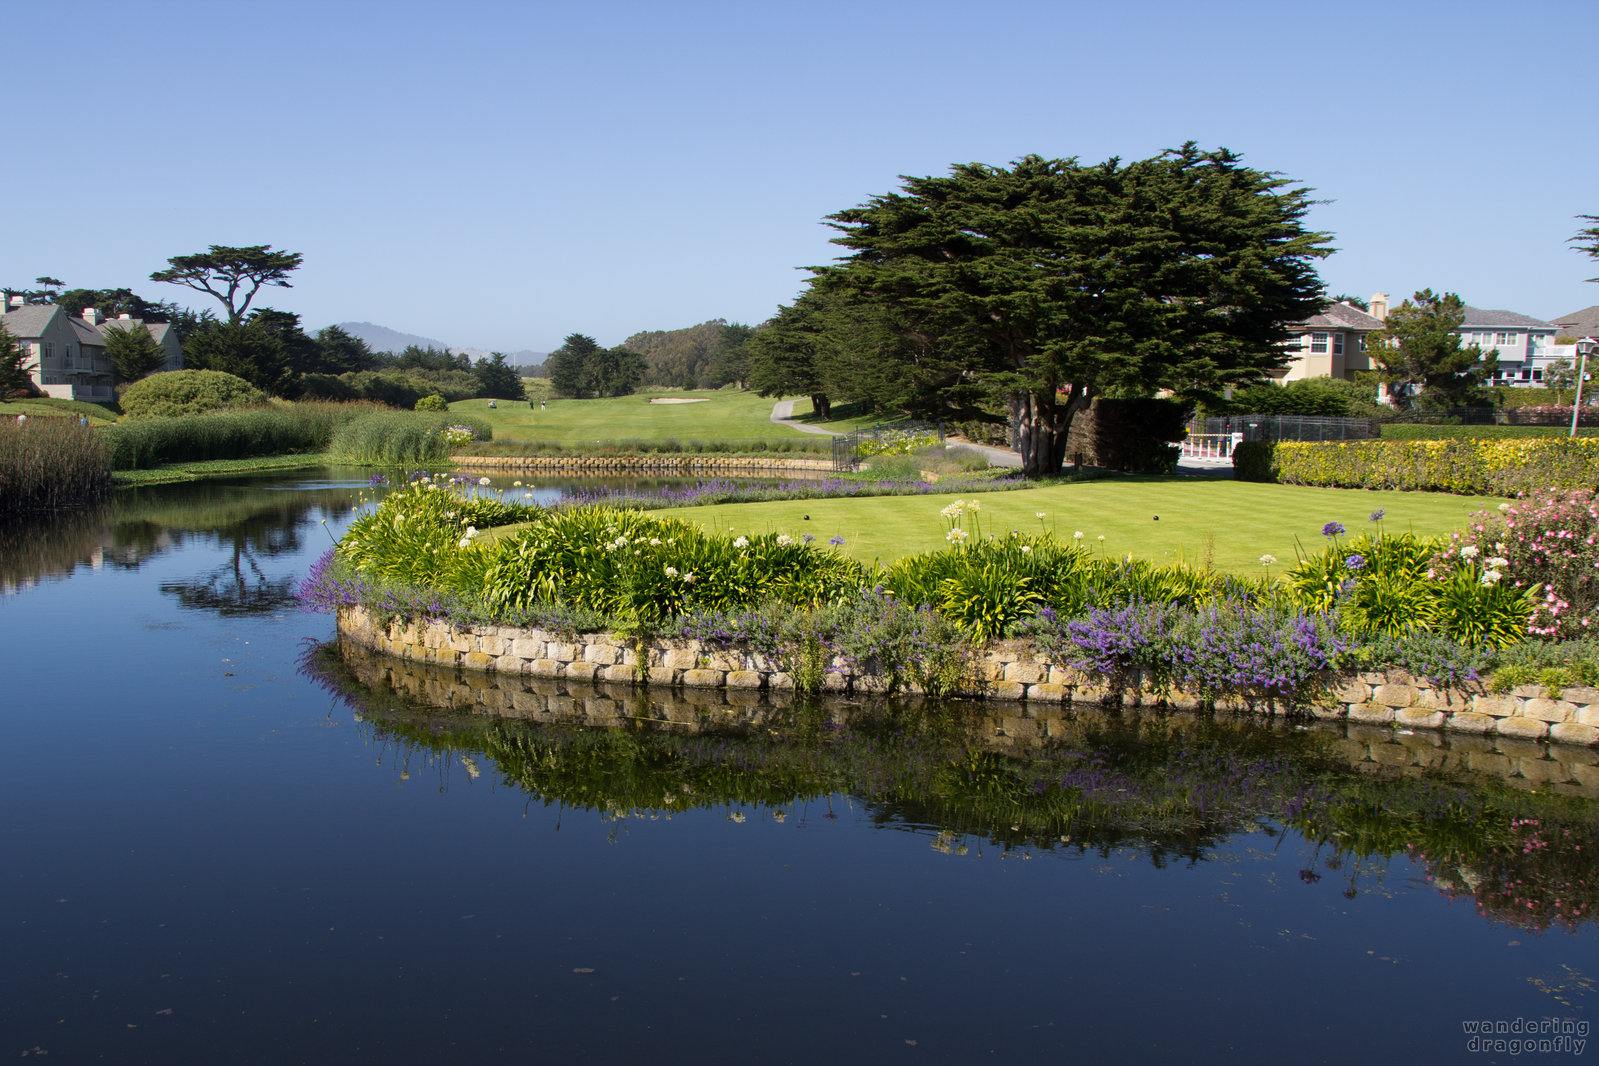 Peaceful environment on the way to the golf courses -- flower, pond, tree